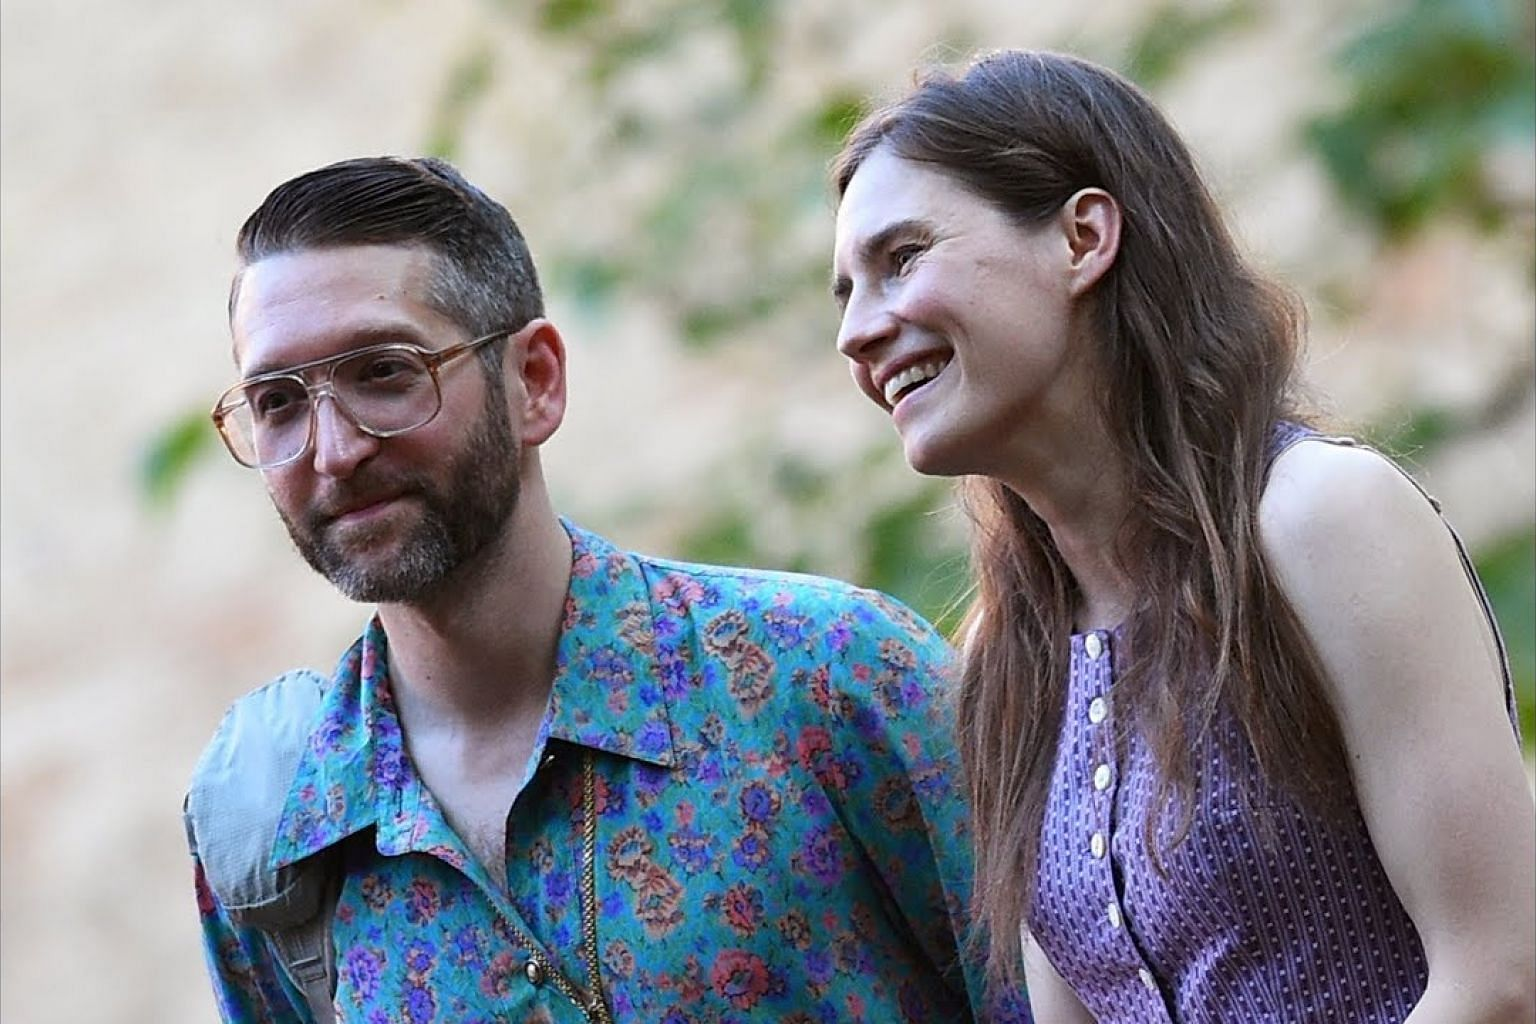 Amanda Knox returns to Italy for first time since roommate's murder